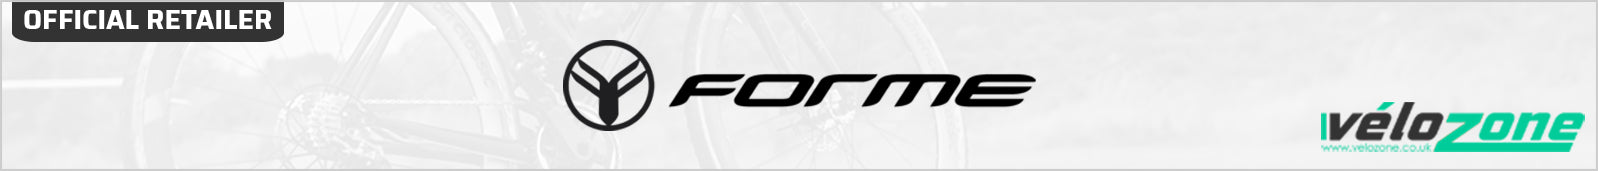 Forme Cycle Brand | Velozone Cycle Store